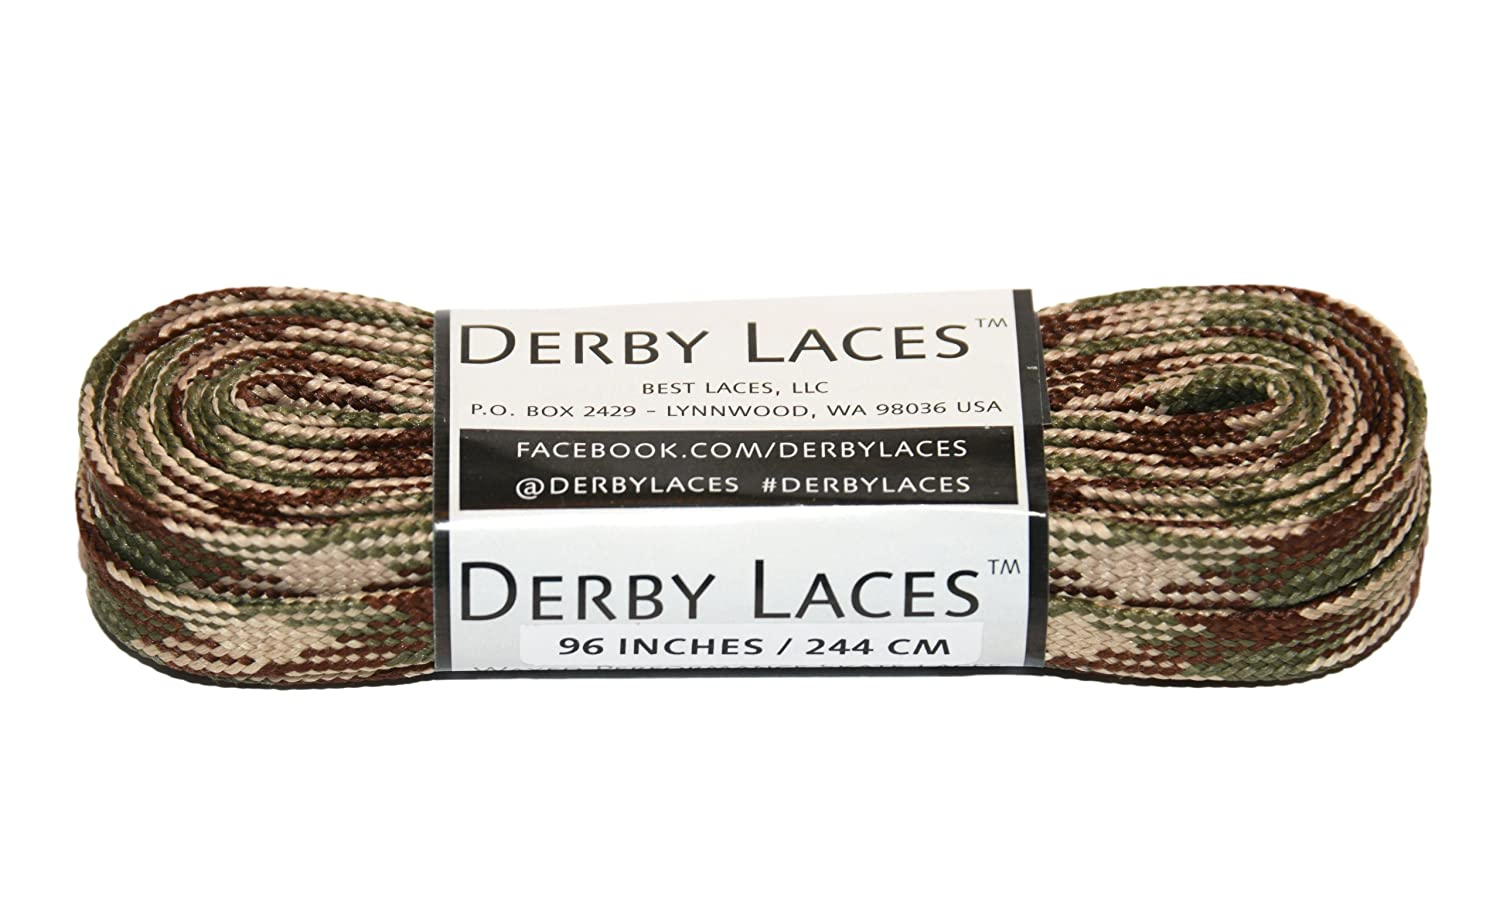 Hockey and Ice Skates Derby Laces Camouflage 96 Inch Waxed Skate Lace for Roller Derby and Boots